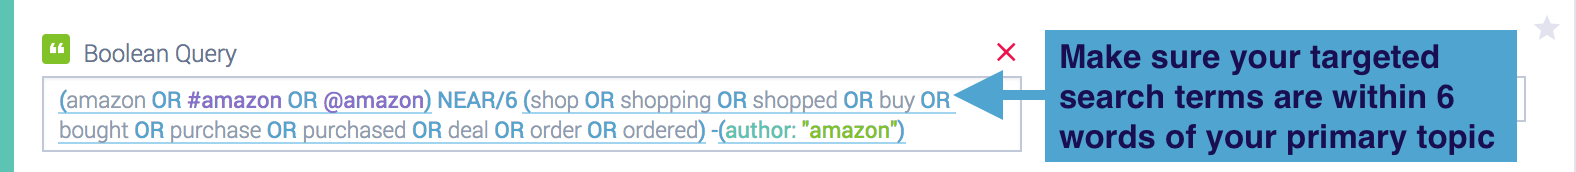 Amazon near operator query